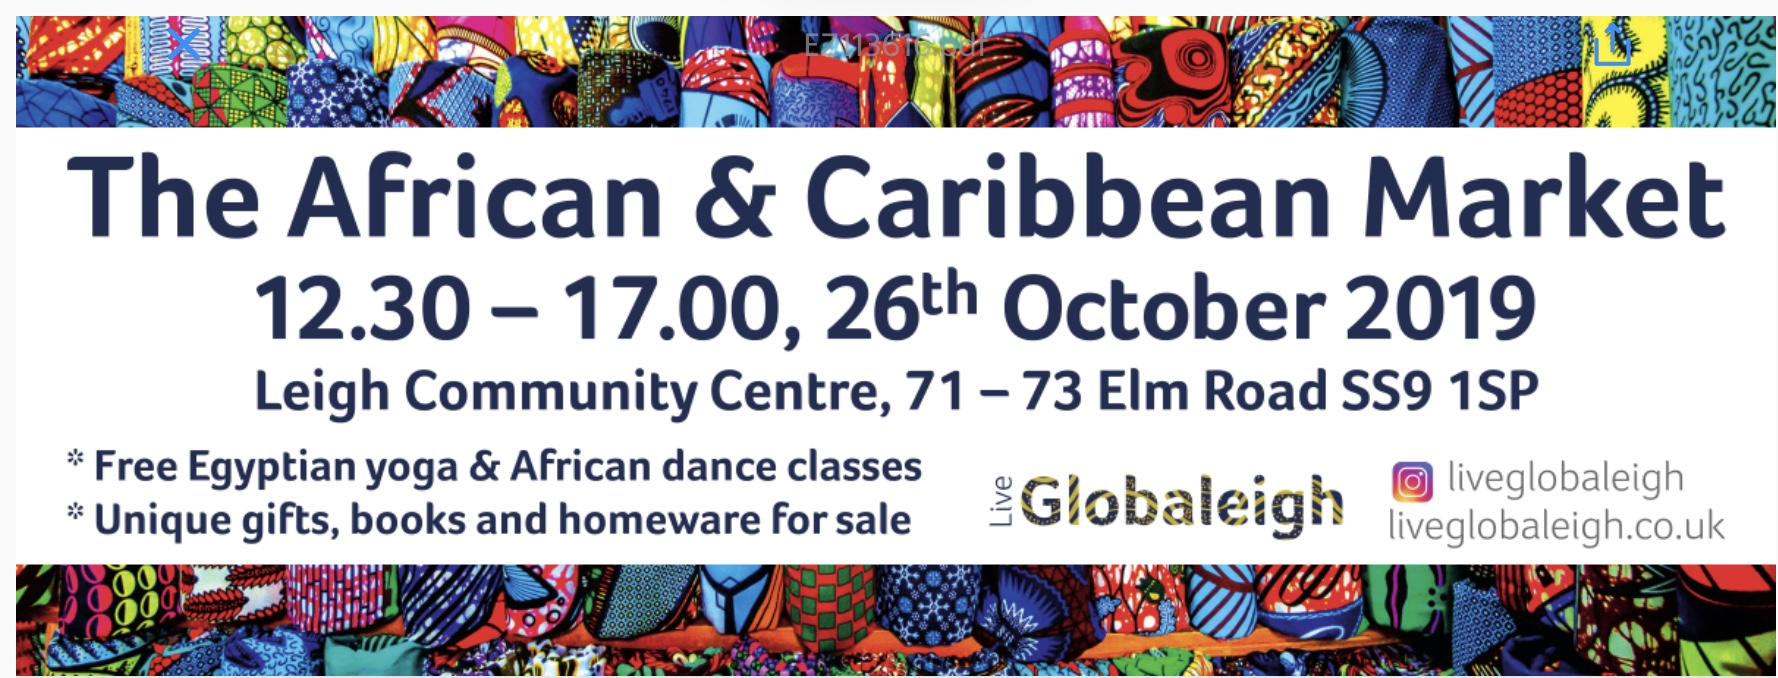 The African & Caribbean Market